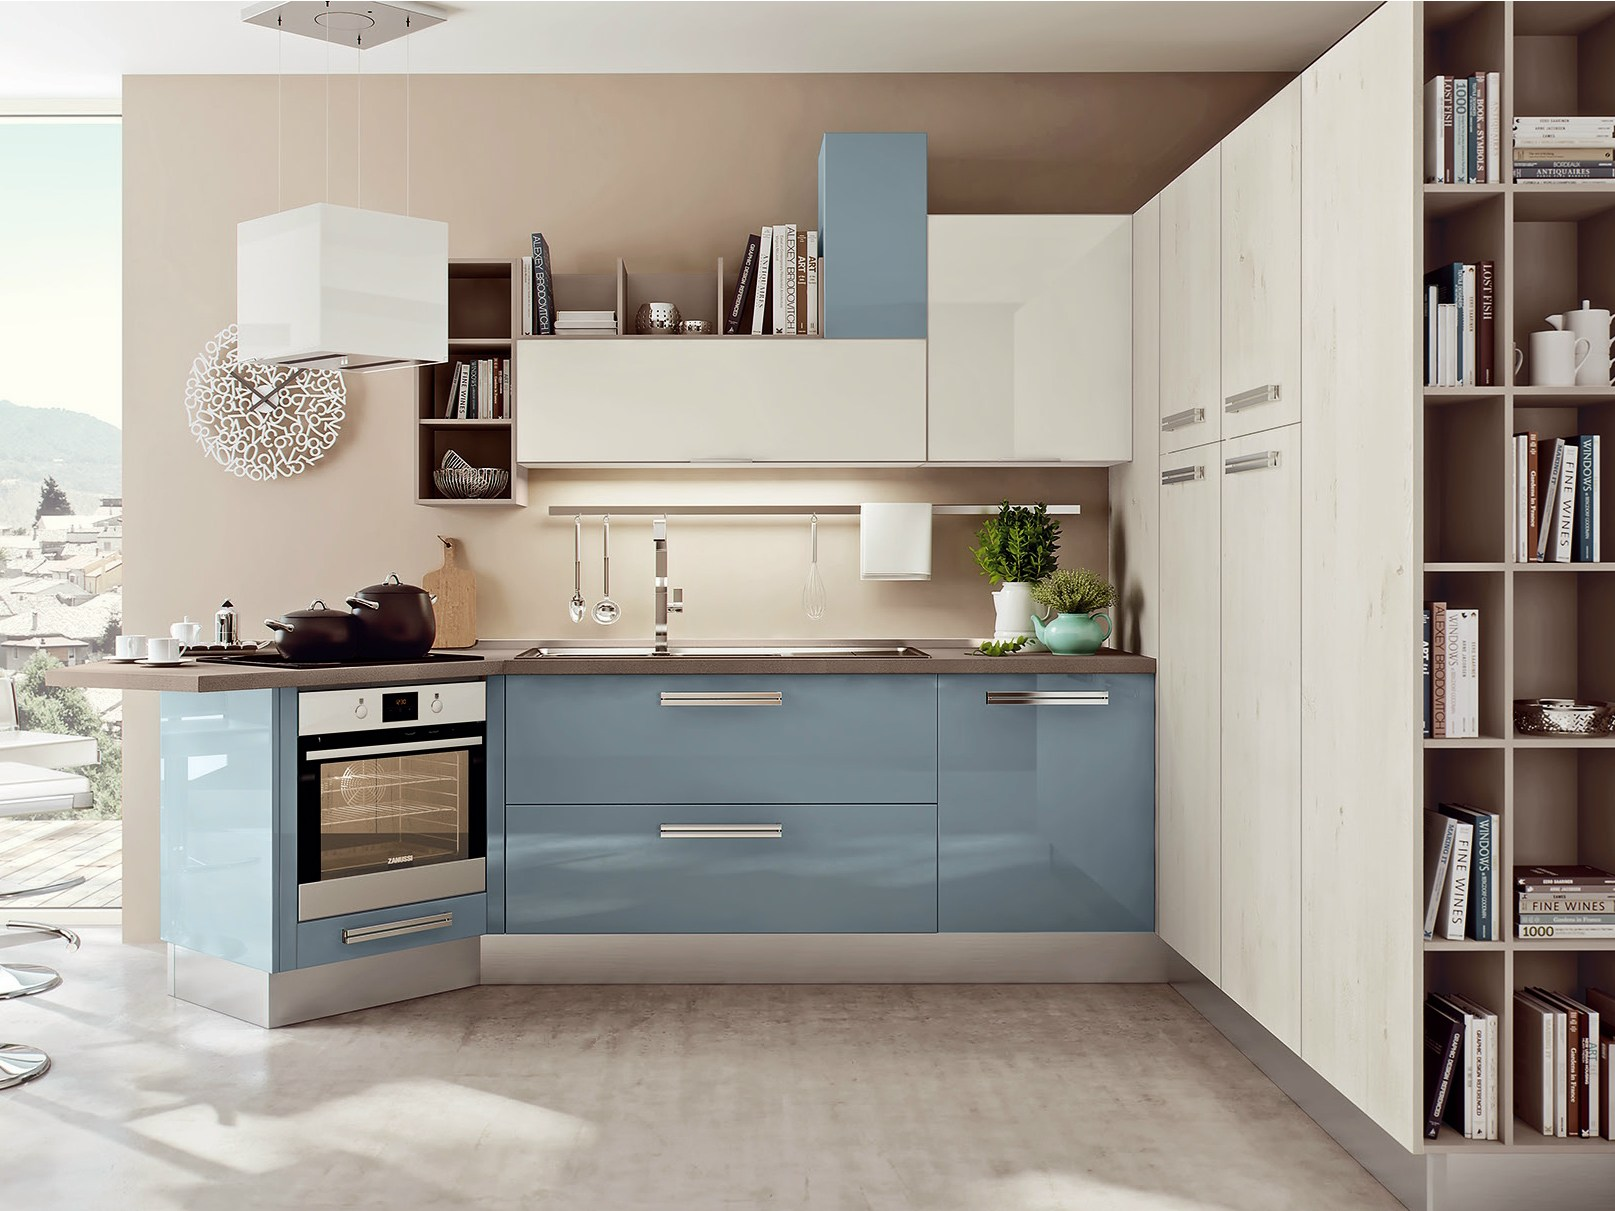 Swing kitchen with peninsula by cucine lube design for Piccole cucine con penisola